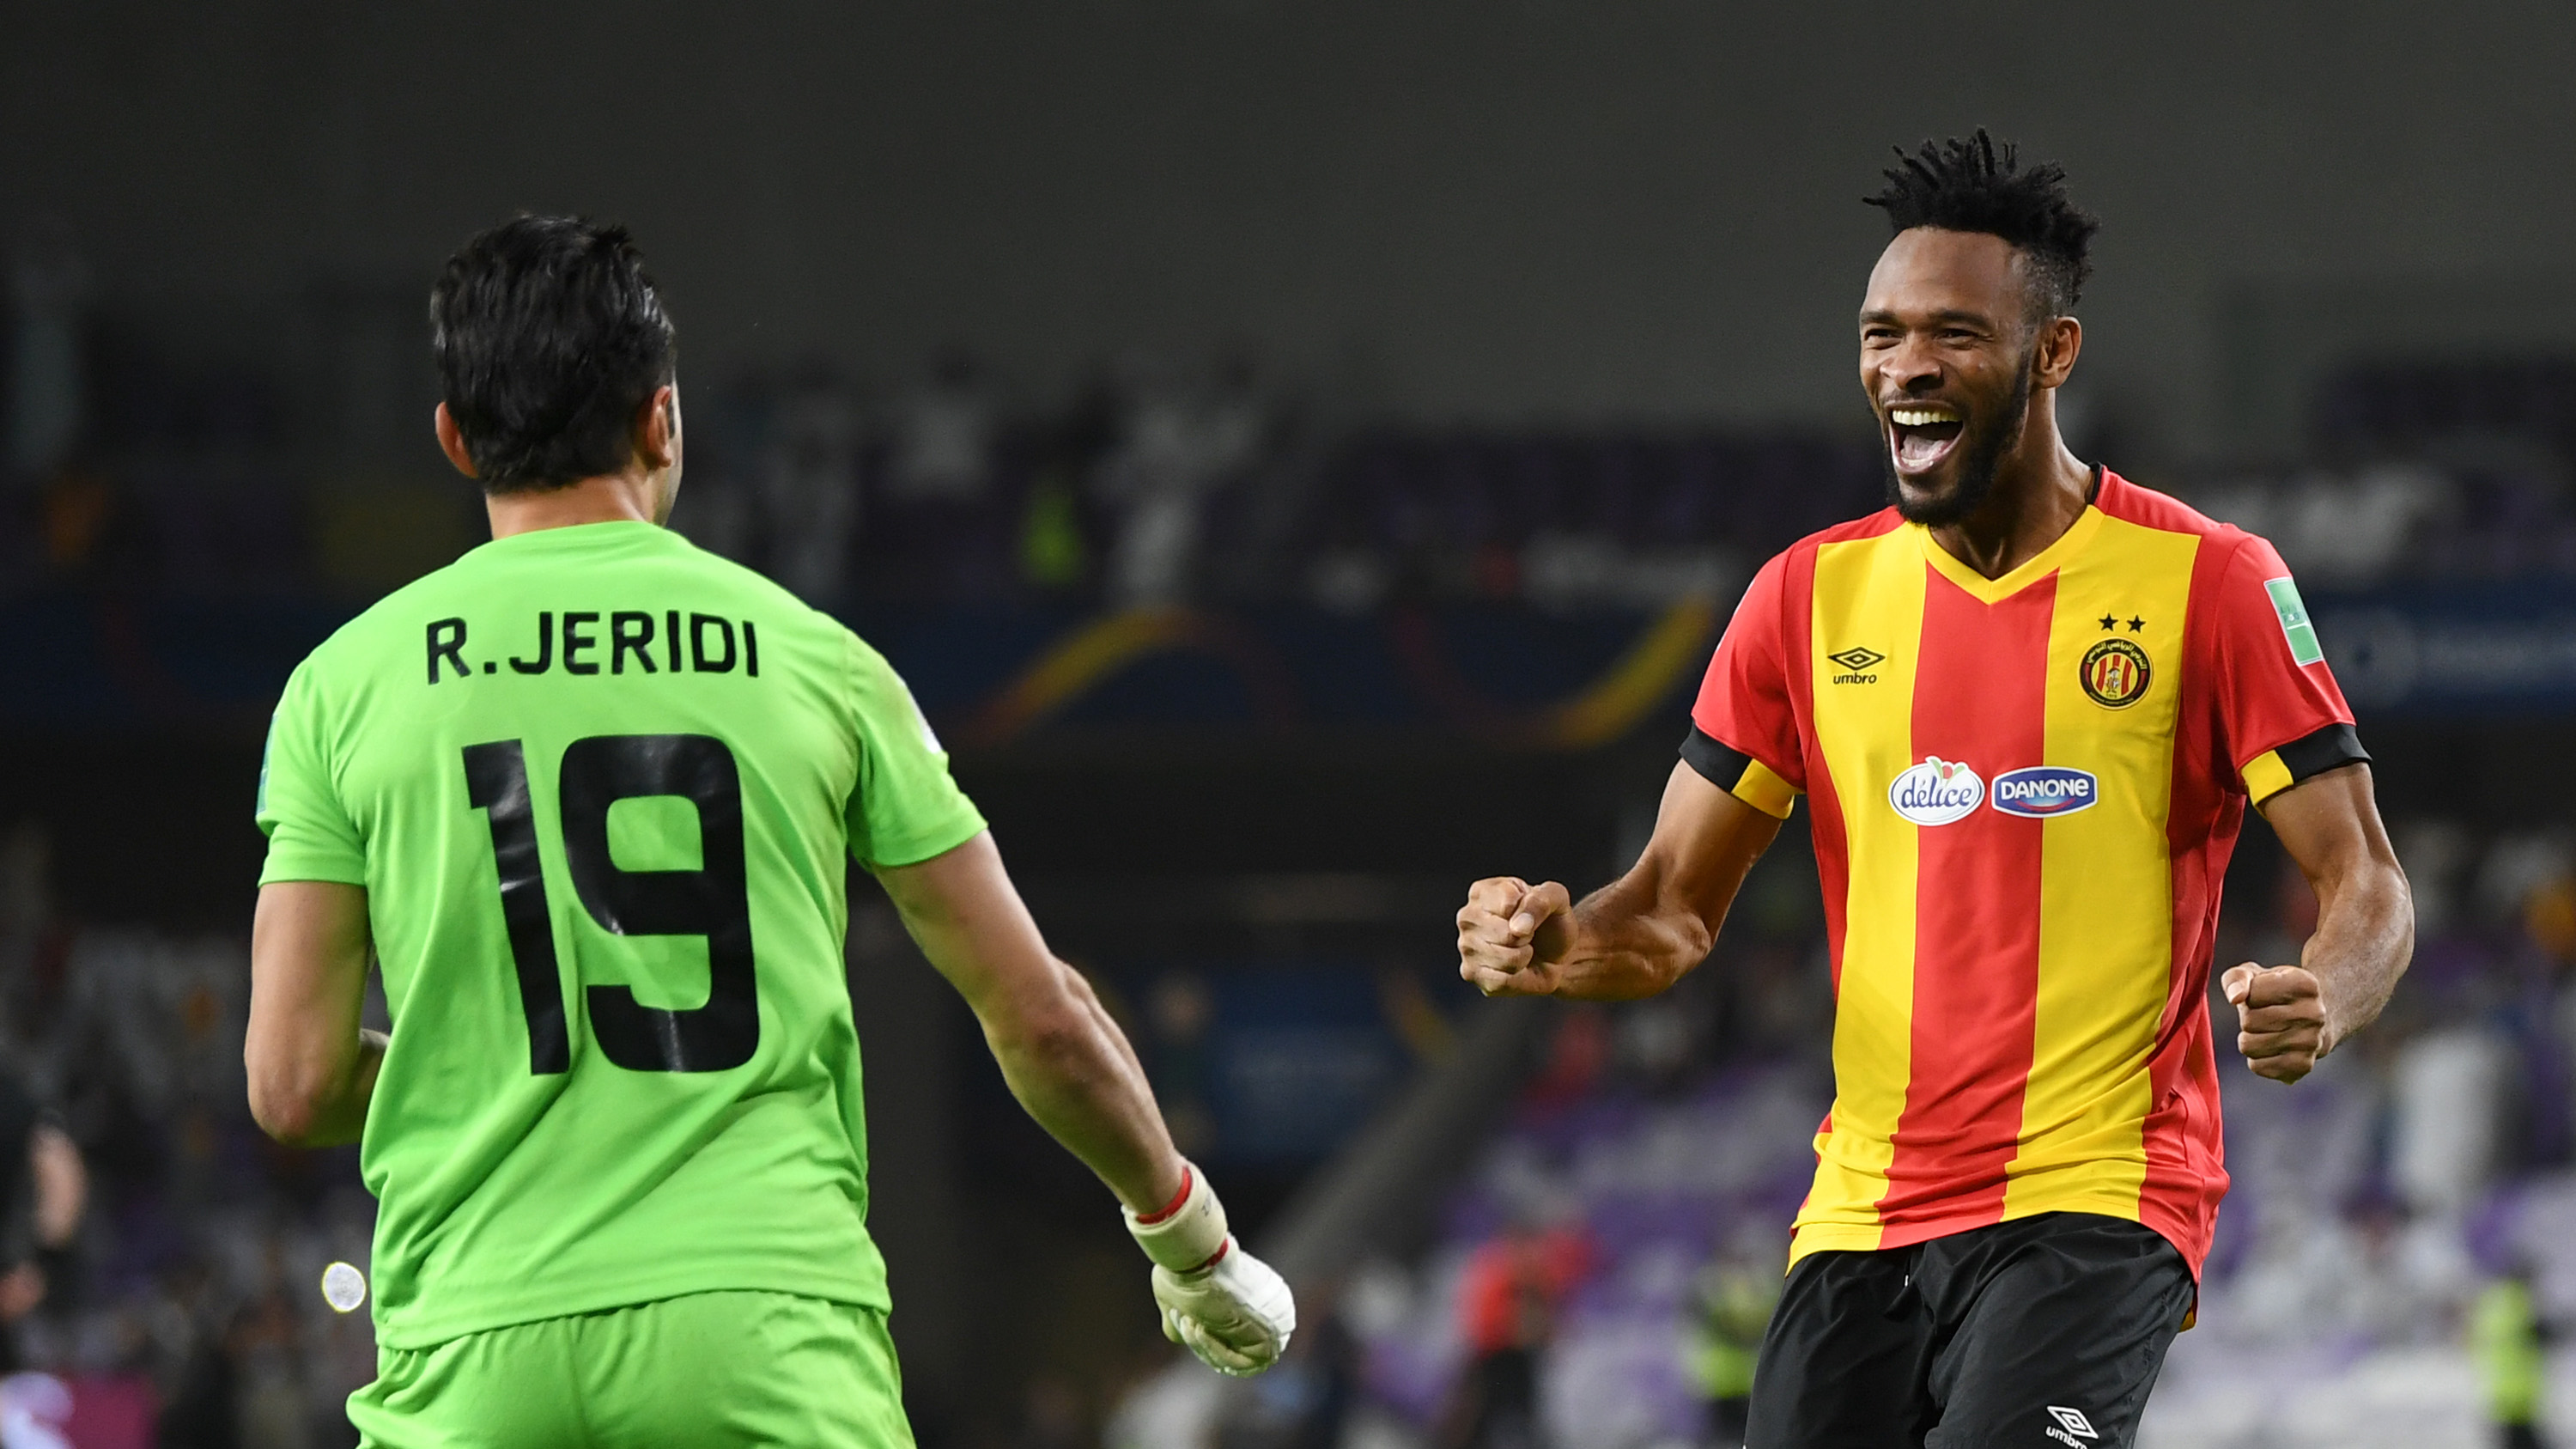 AL AIN, UNITED ARAB EMIRATES - DECEMBER 18: Rami Jeridi and Fousseny Coulibaly of ES Tunis celebrate victory following the penalty shoot out during the FIFA Club World Cup UAE 2018 5th Place Match between ES Tunis and CD Guadalajara at Hazza Bin Zayed Stadium on December 18, 2018 in Al Ain, United Arab Emirates. (Photo by David Ramos - FIFA/FIFA via Getty Images)